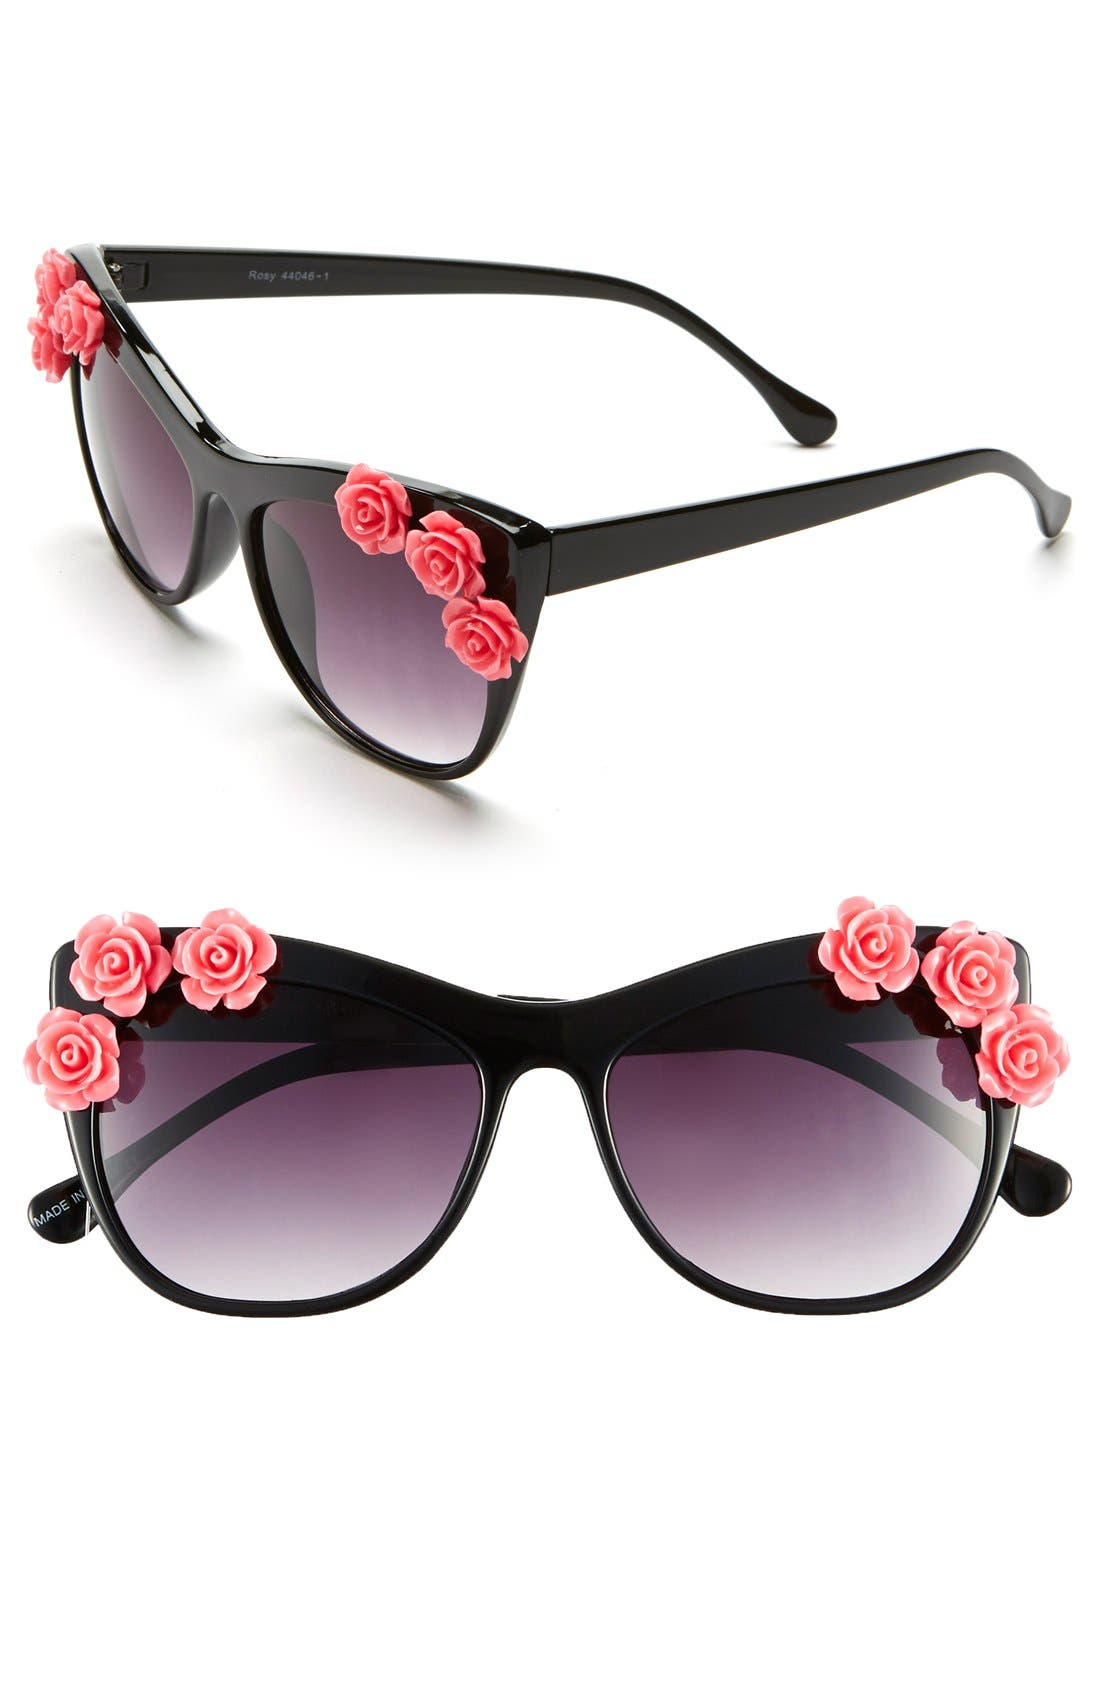 Main Image - BP. 55mm Flower Embellished Sunglasses